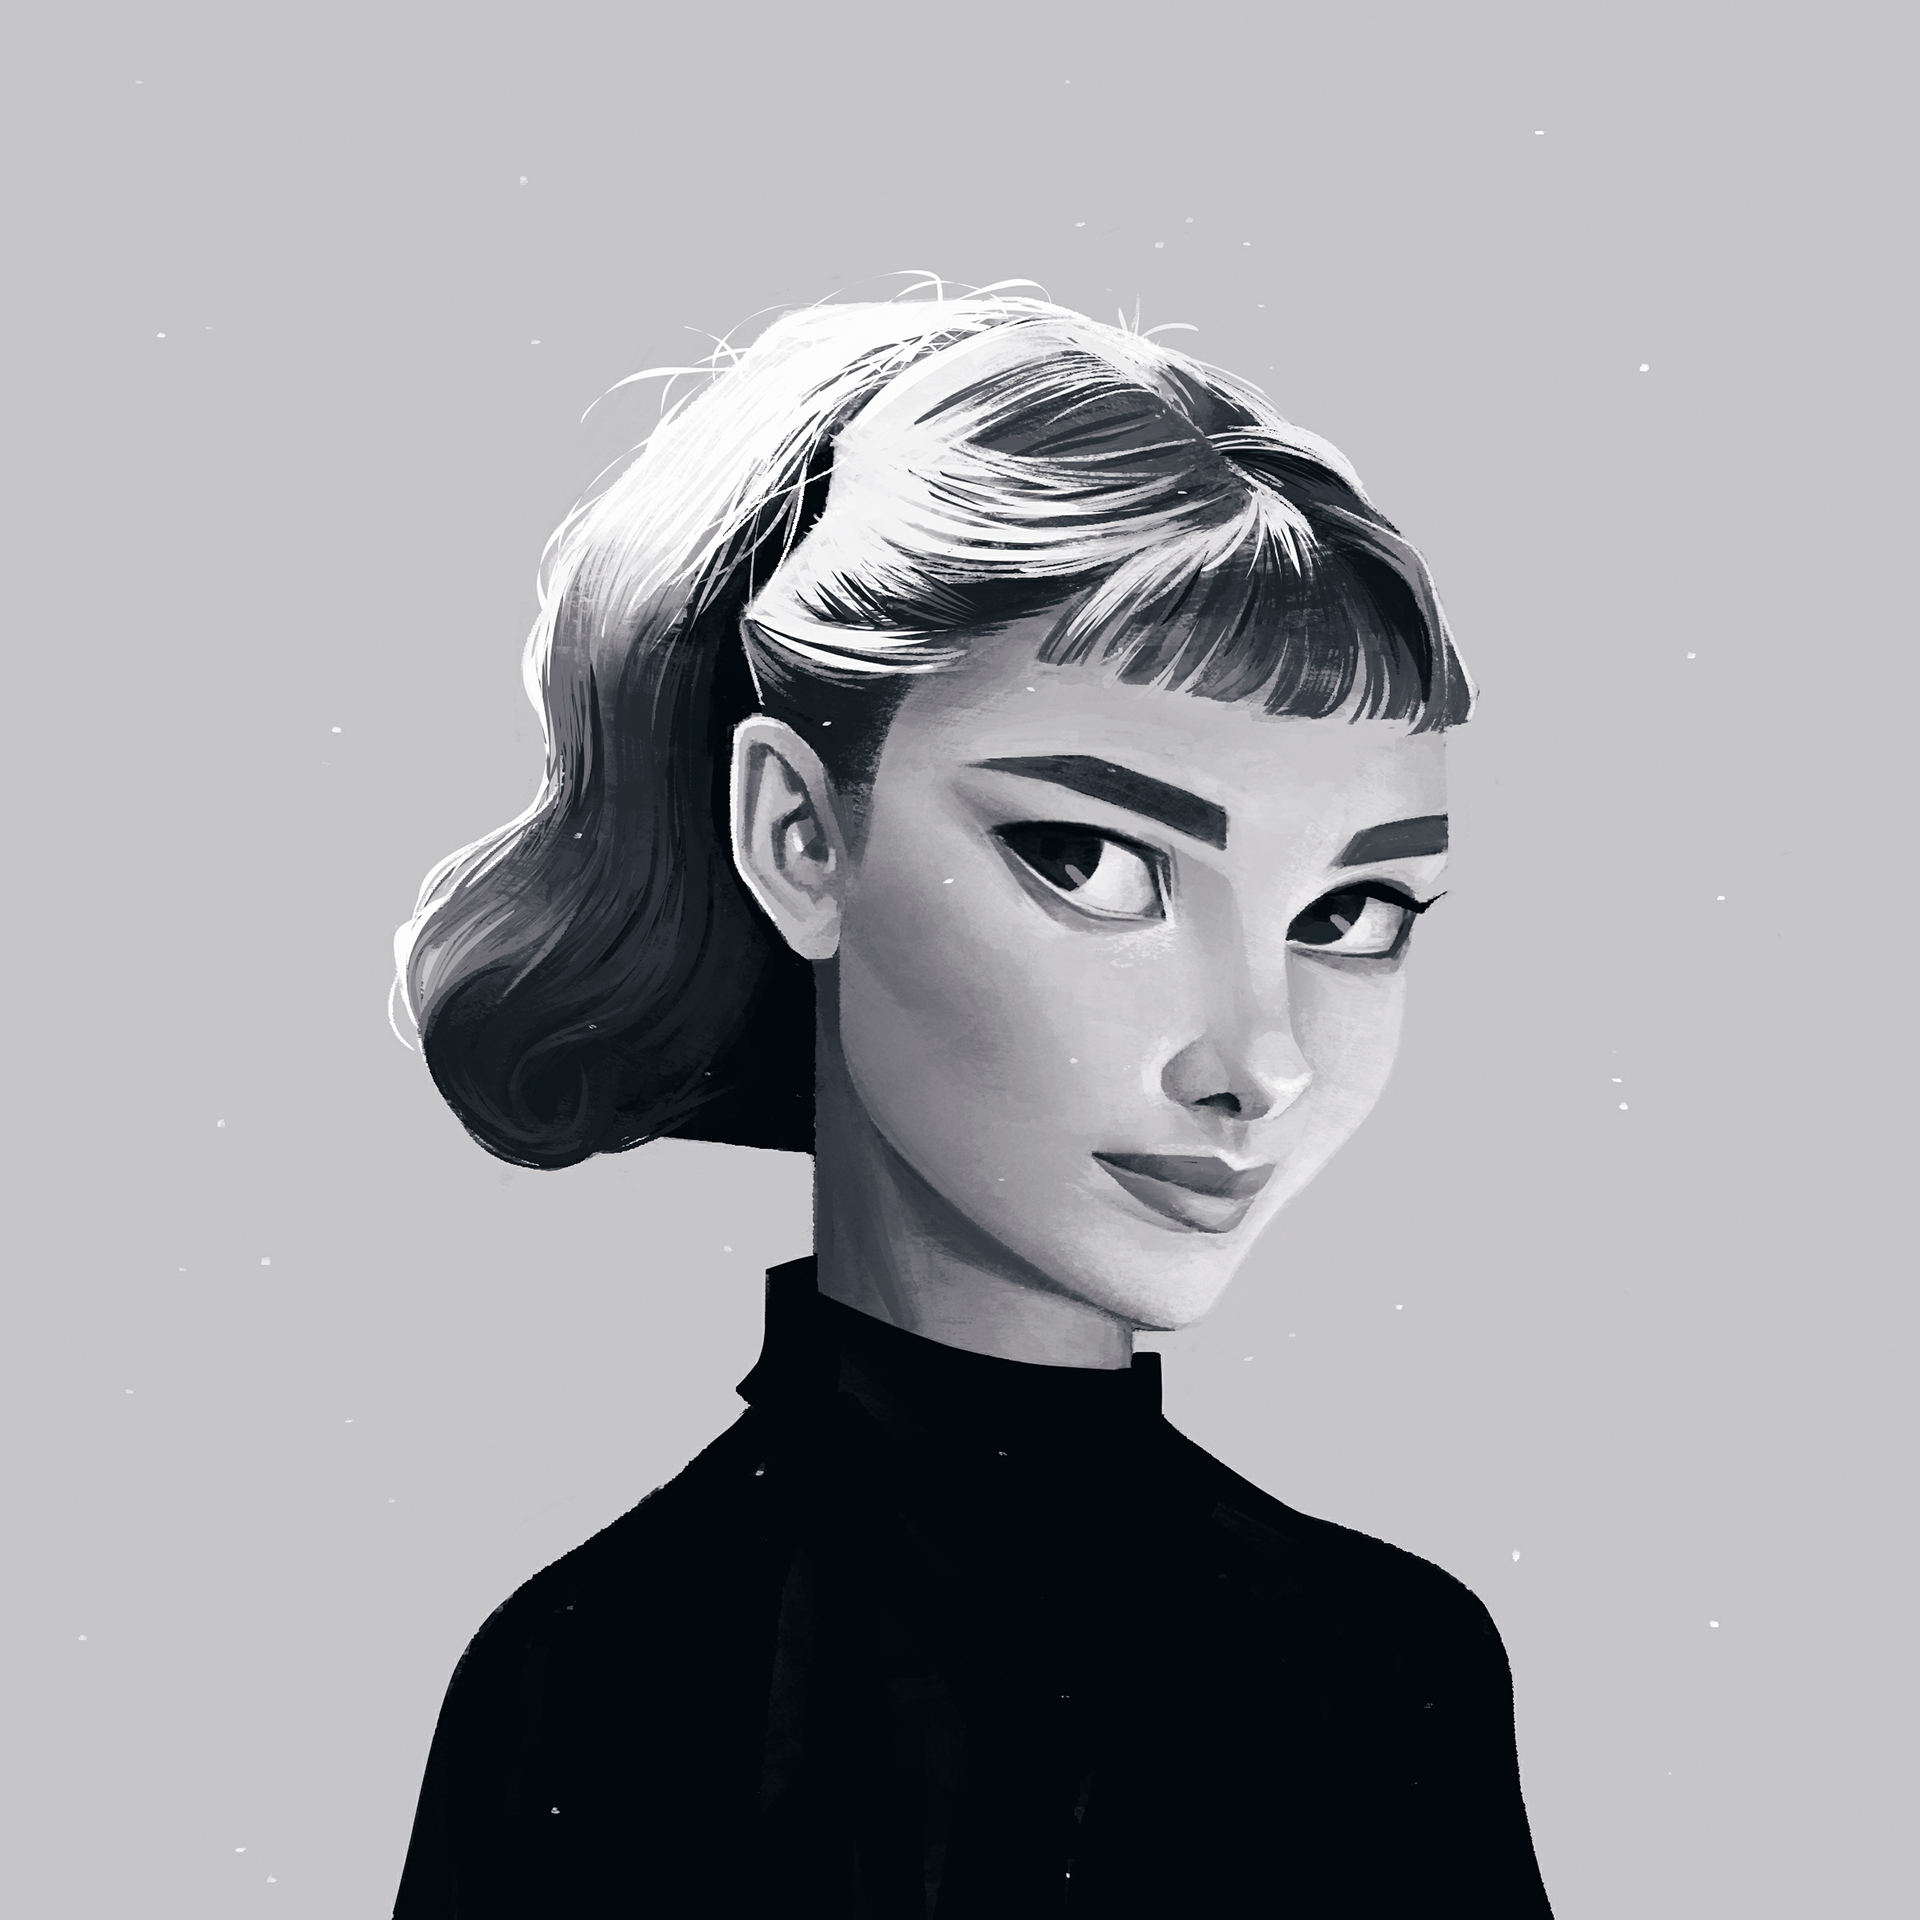 Voguish Portrait Illustrations by Janice Sung - paul-stafford.com